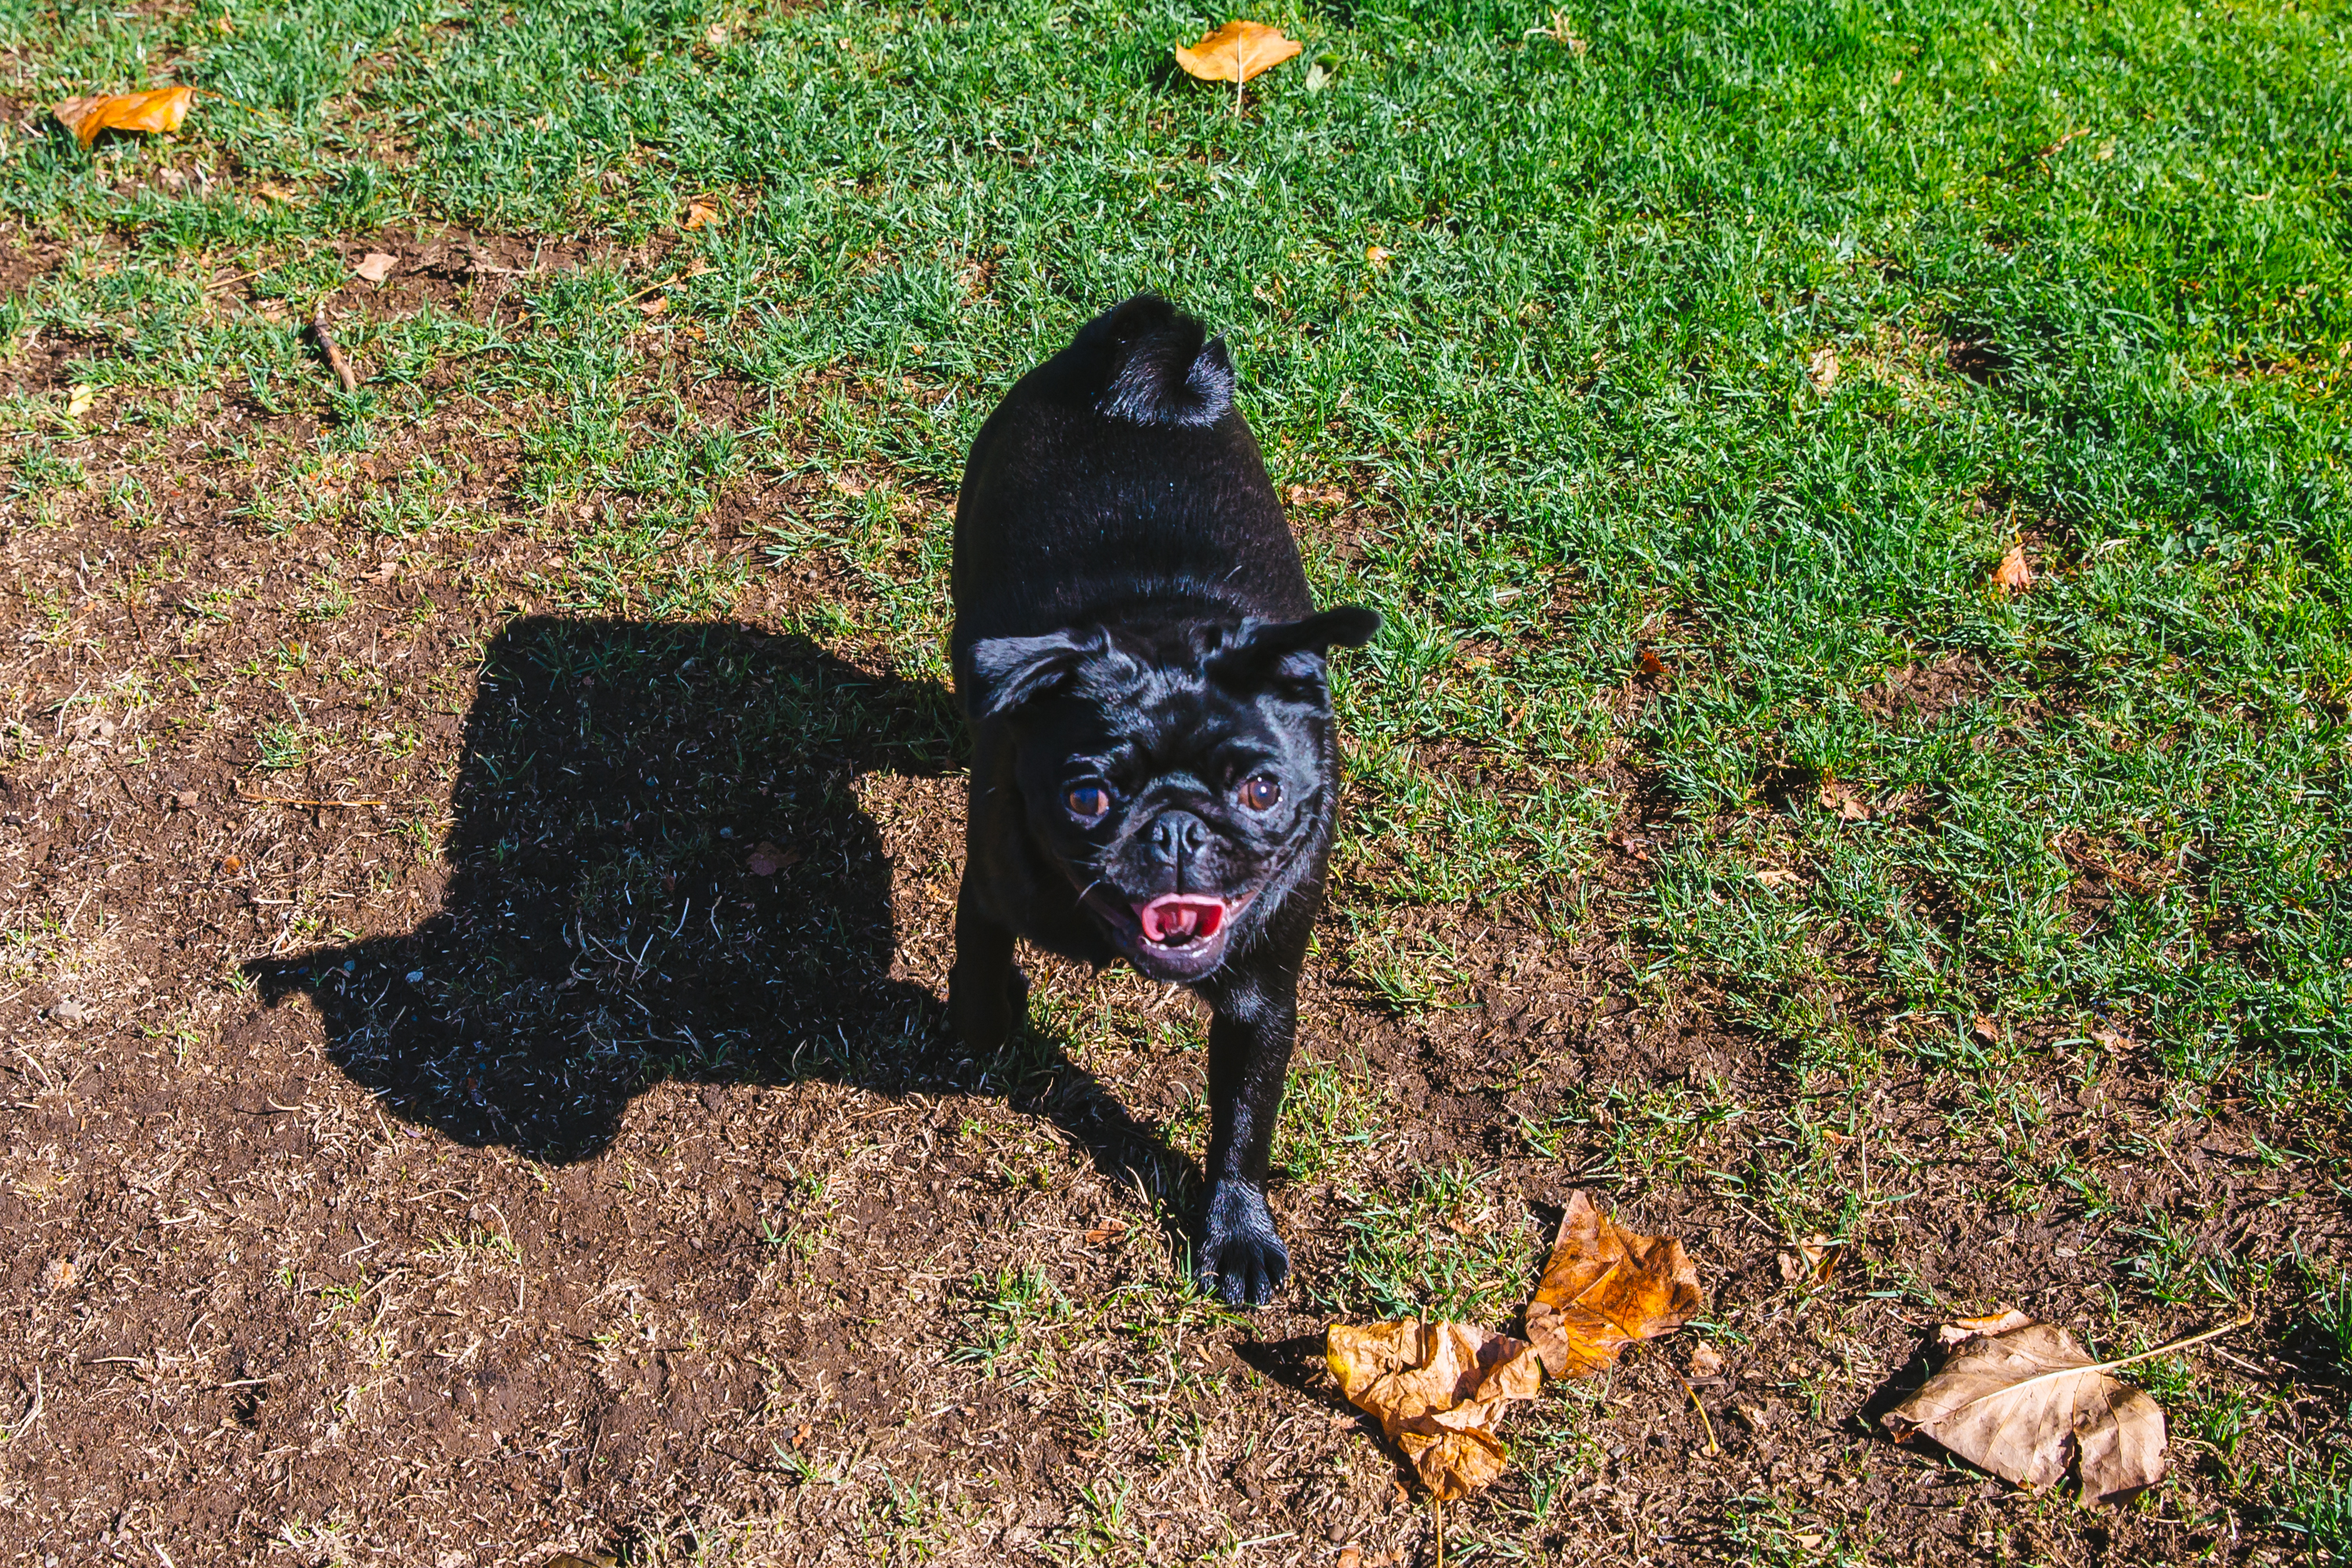 "This week in RUFFined news, we bring you Millie Bobby Brownrigg the Pug! Millie Bobbie is a one year old pug and was named after the actress who plays ""Eleven"" in Stranger Things (FYI, Stranger Things season two will return to Netflix this weekend on October 27). Millie Bobby is the biggest fan of Stranger Things and spends her days as the shop dog for Brownrigg Hard Cider in SODO! She likes cider drinks and sleeping. Me and MB have so much in common. MB likes her young pack-mates Ruby and Max Brownrigg and dislikes goodbyes. The Seattle RUFFined Spotlight is a weekly profile of local pets living and loving life in the PNW. If you or someone you know has a pet you'd like featured, email us at hello@seattlerefined.com or tag #SeattleRUFFined and your furbaby could be the next spotlighted! (Image: Sunita Martini / Seattle Refined)"